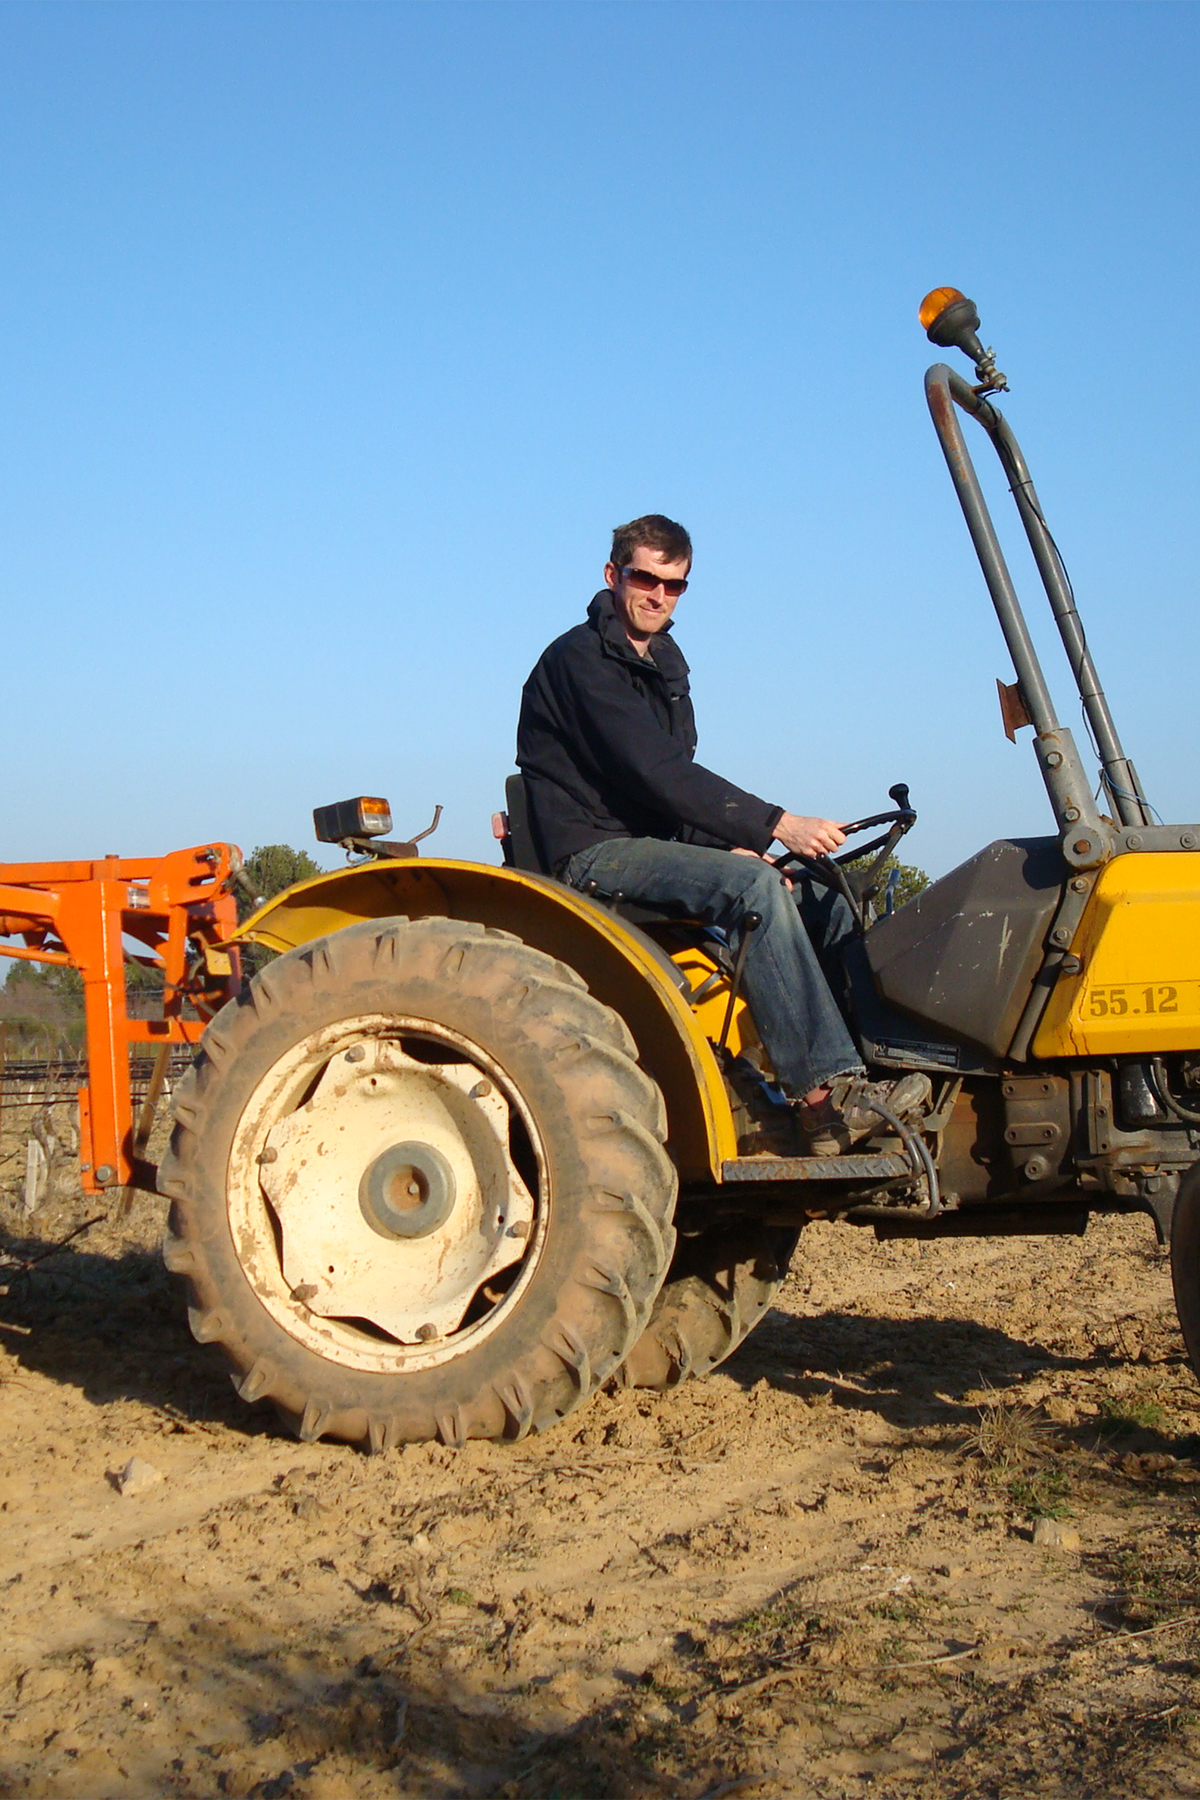 A man driving a yellow tractor through a bare field.